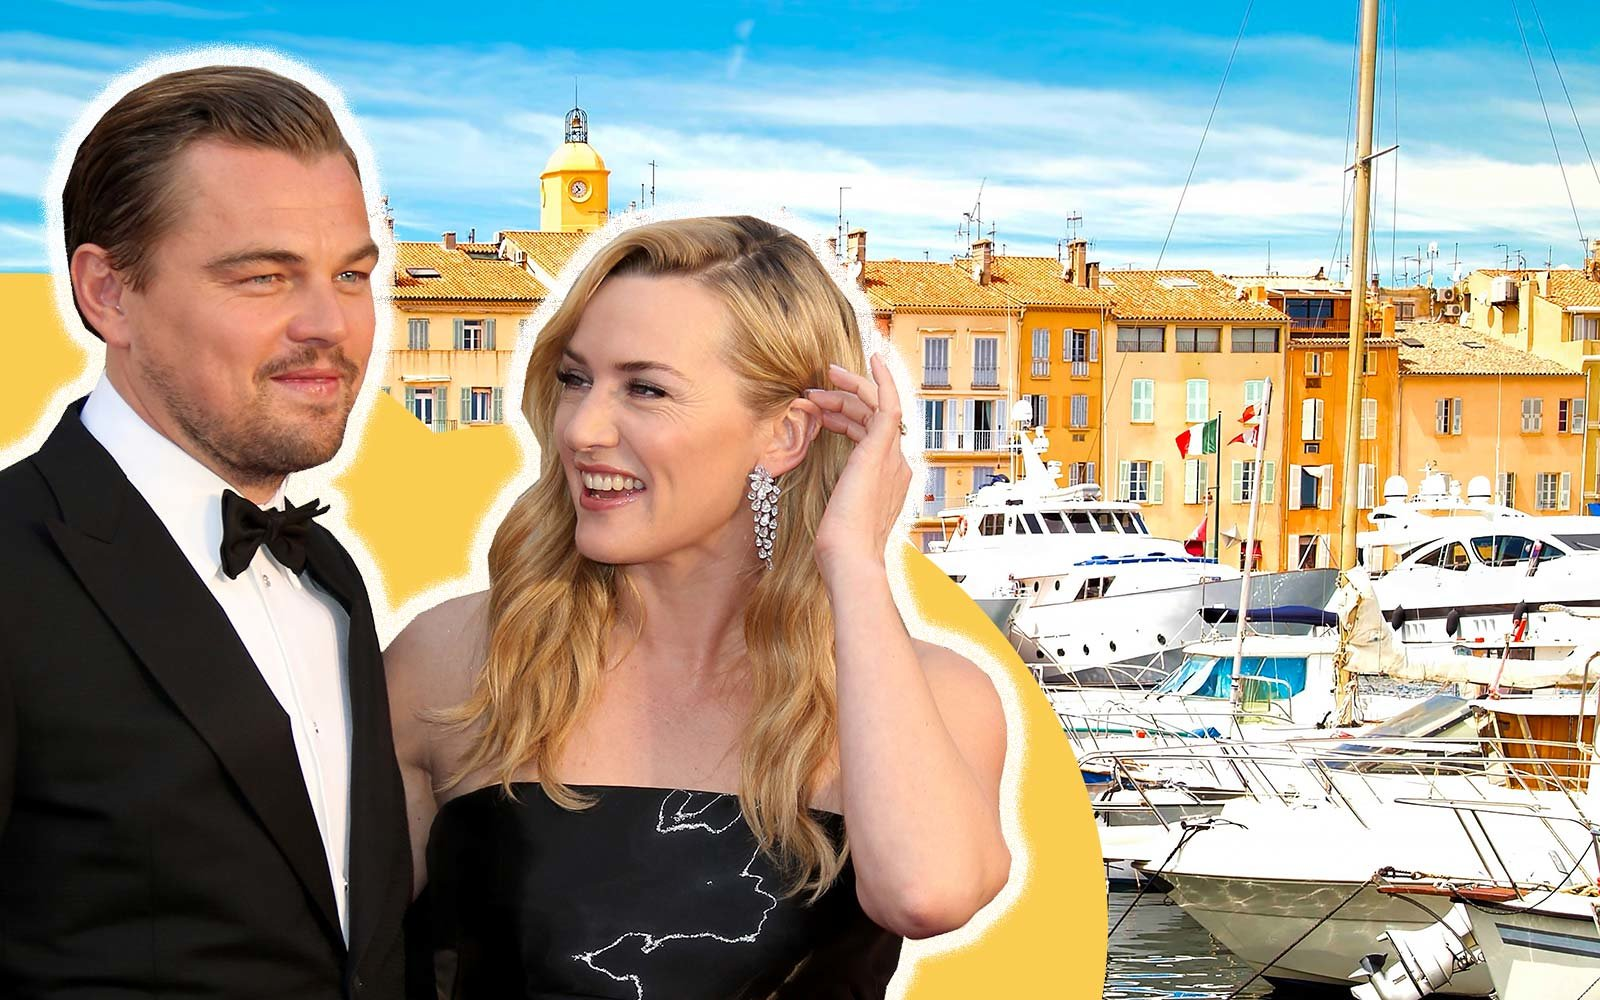 Saint-Tropez, south of France, French Riviera Kate Winslet Leonardo DiCaprio summer holiday travel vacation